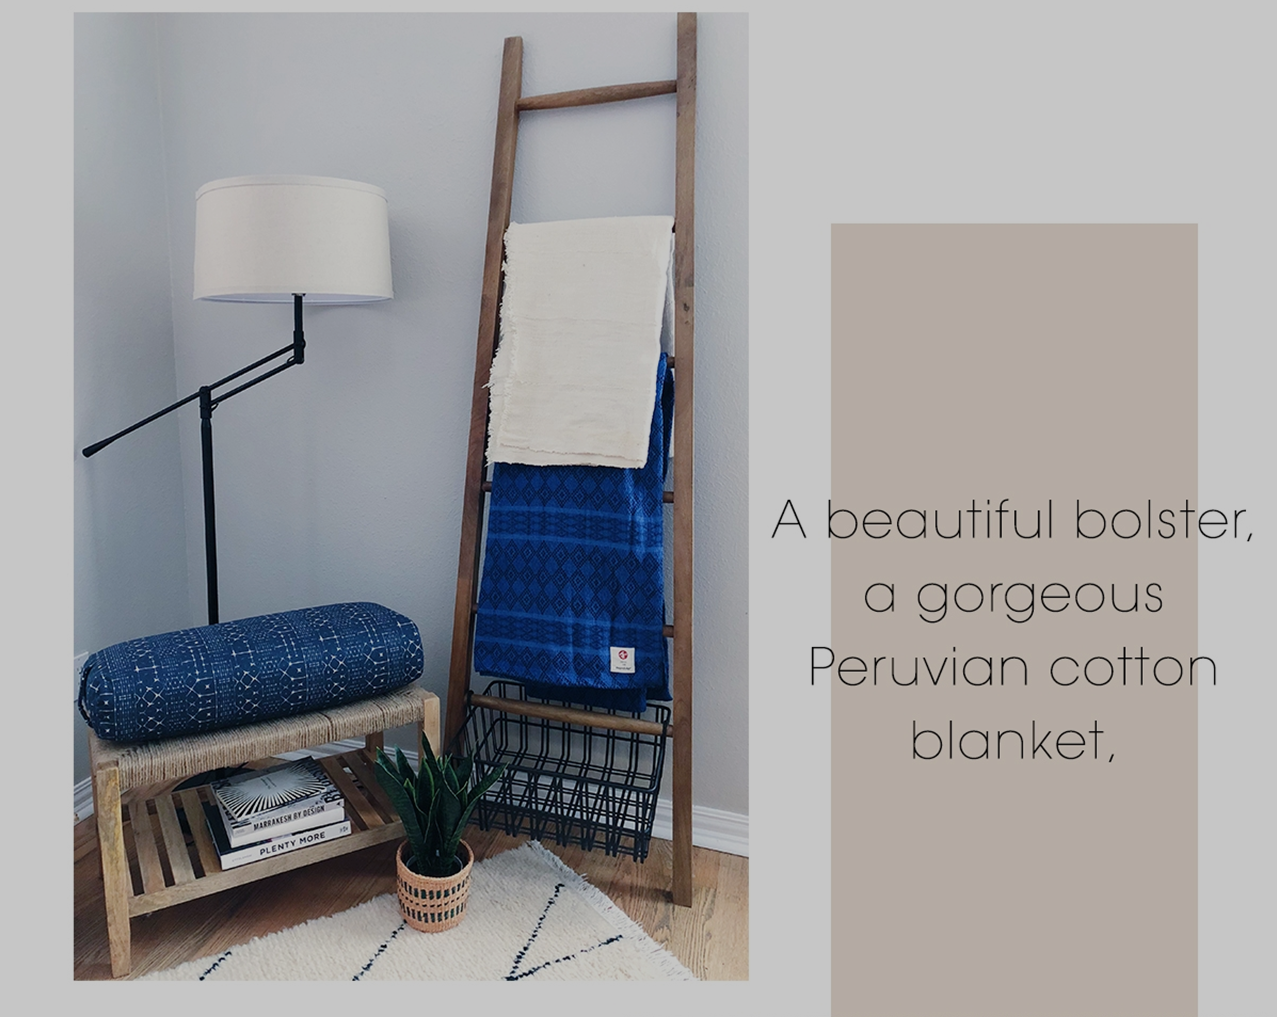 Carve out a Place for Contemplation - Add in elements like a bench, blanket, and bolster to create a meditation space.